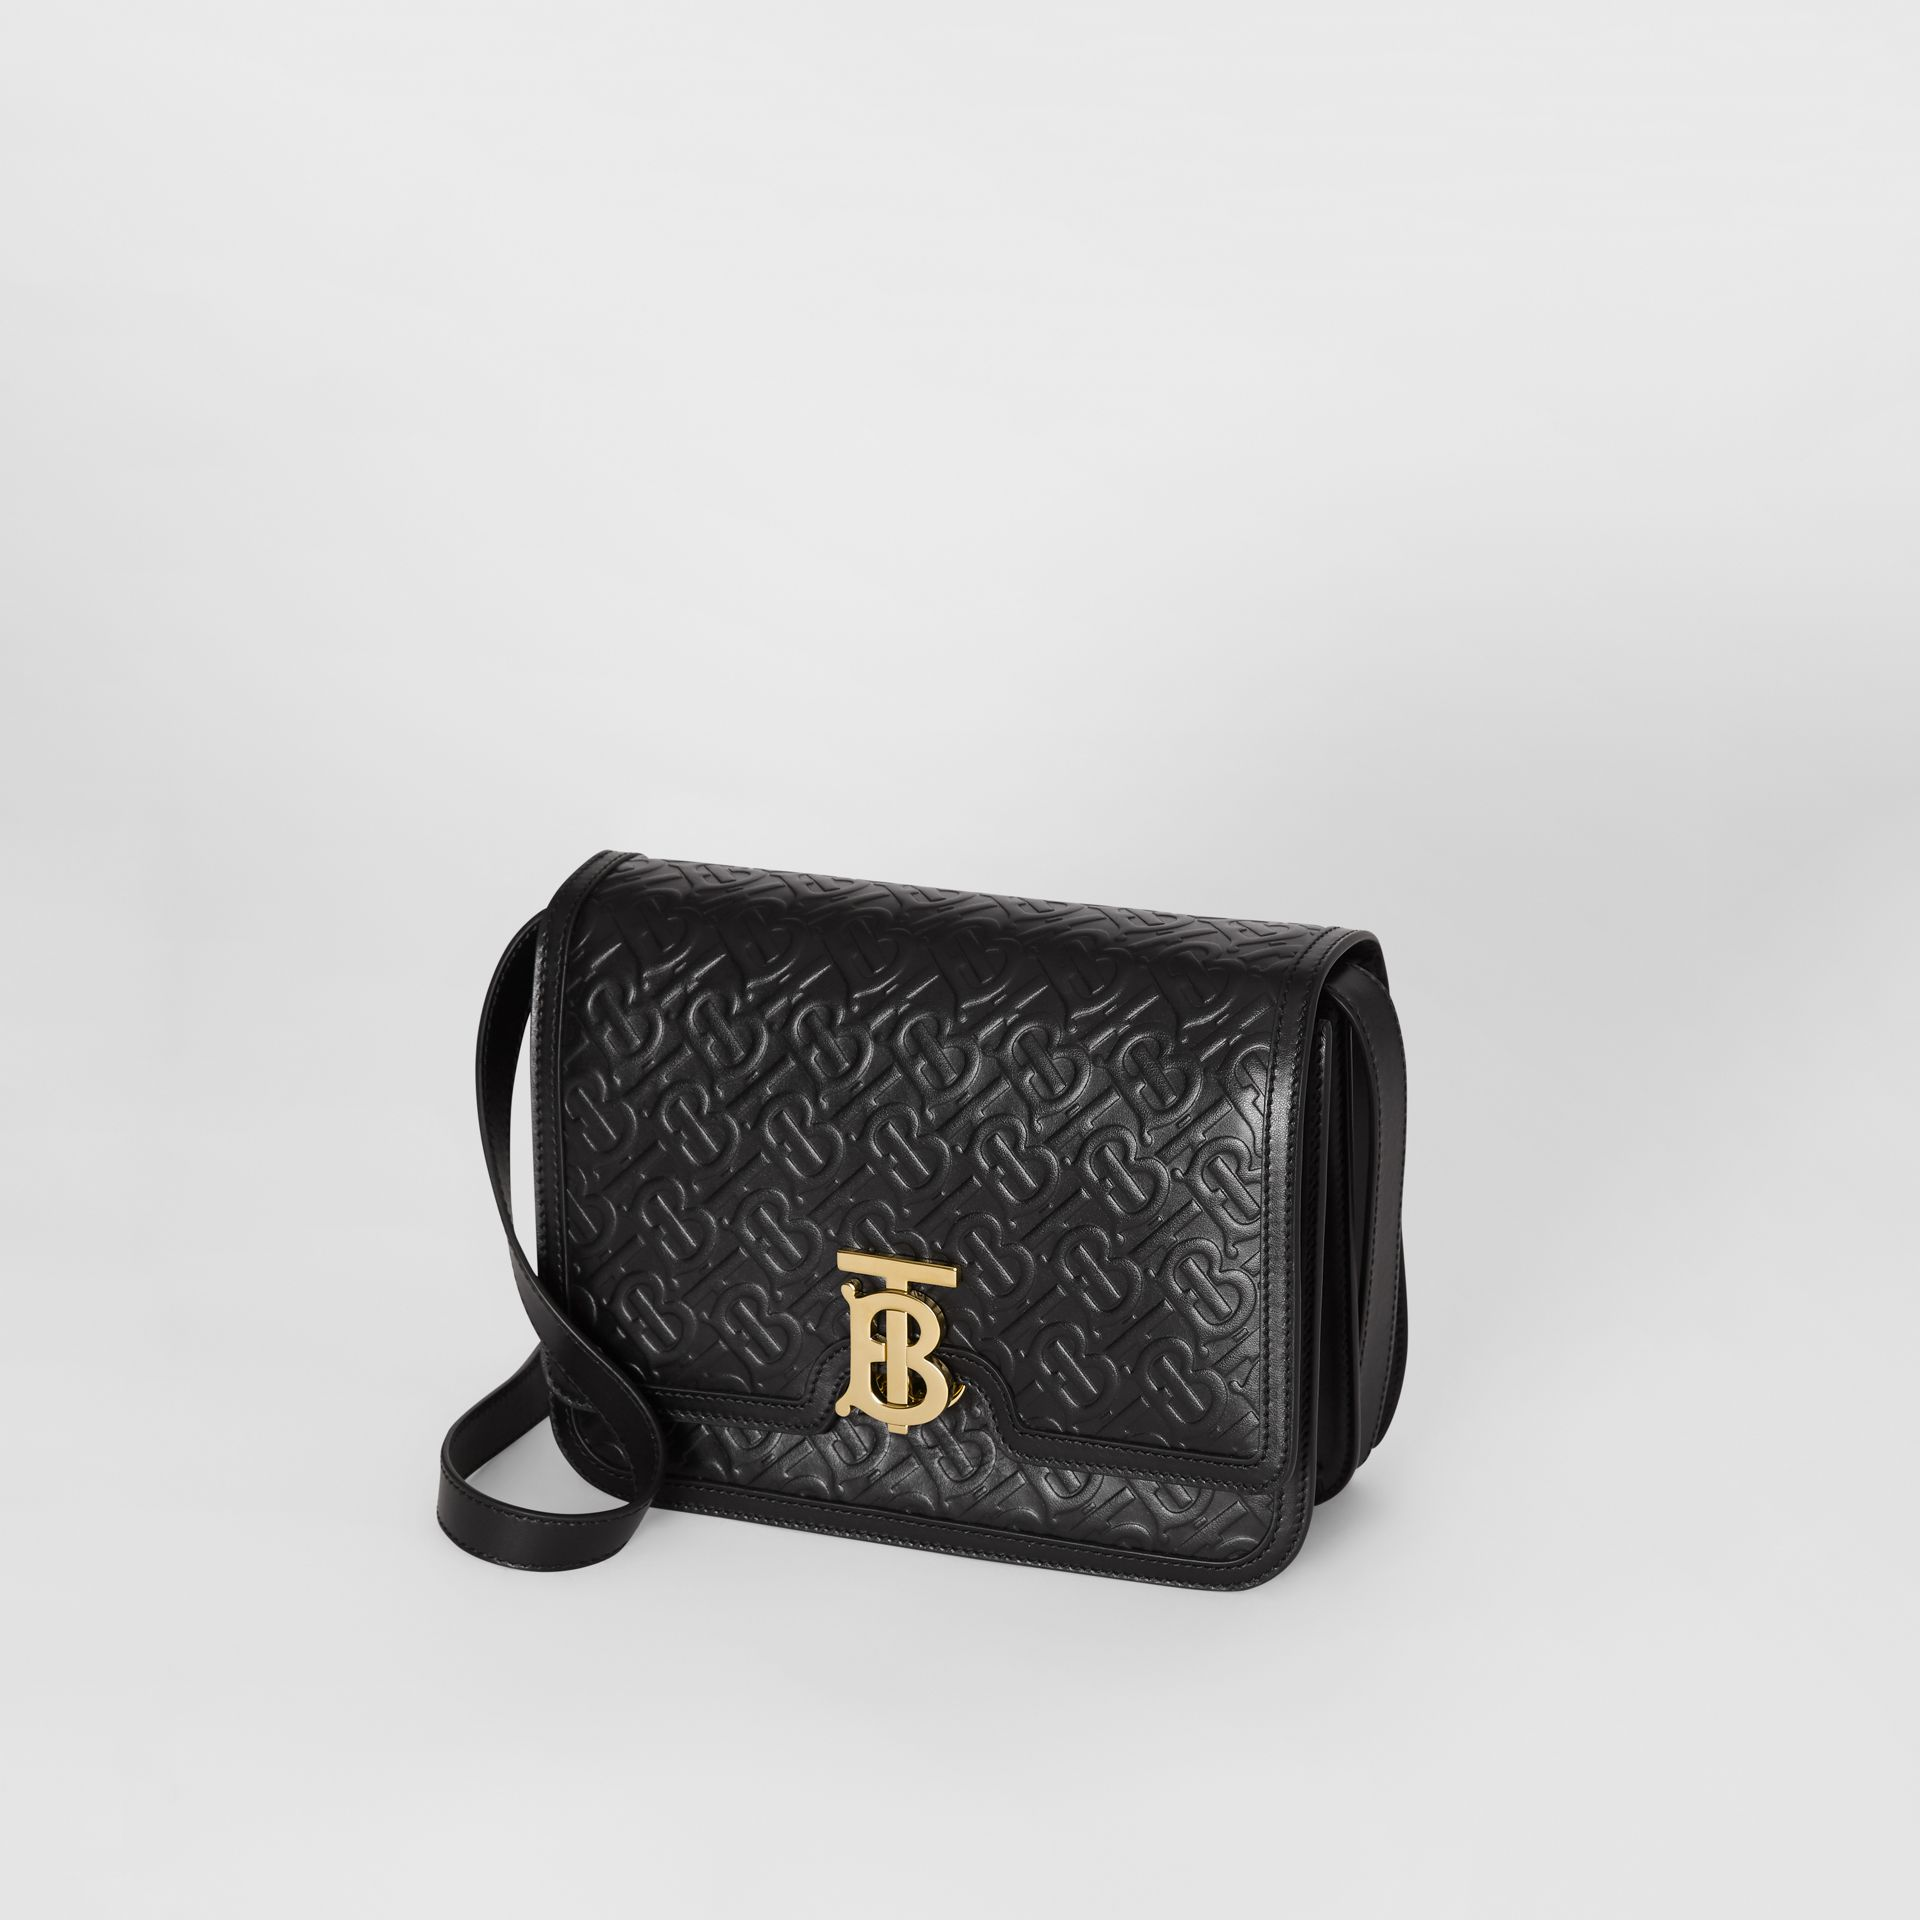 Medium Monogram Leather TB Bag in Black - Women | Burberry Canada - gallery image 3